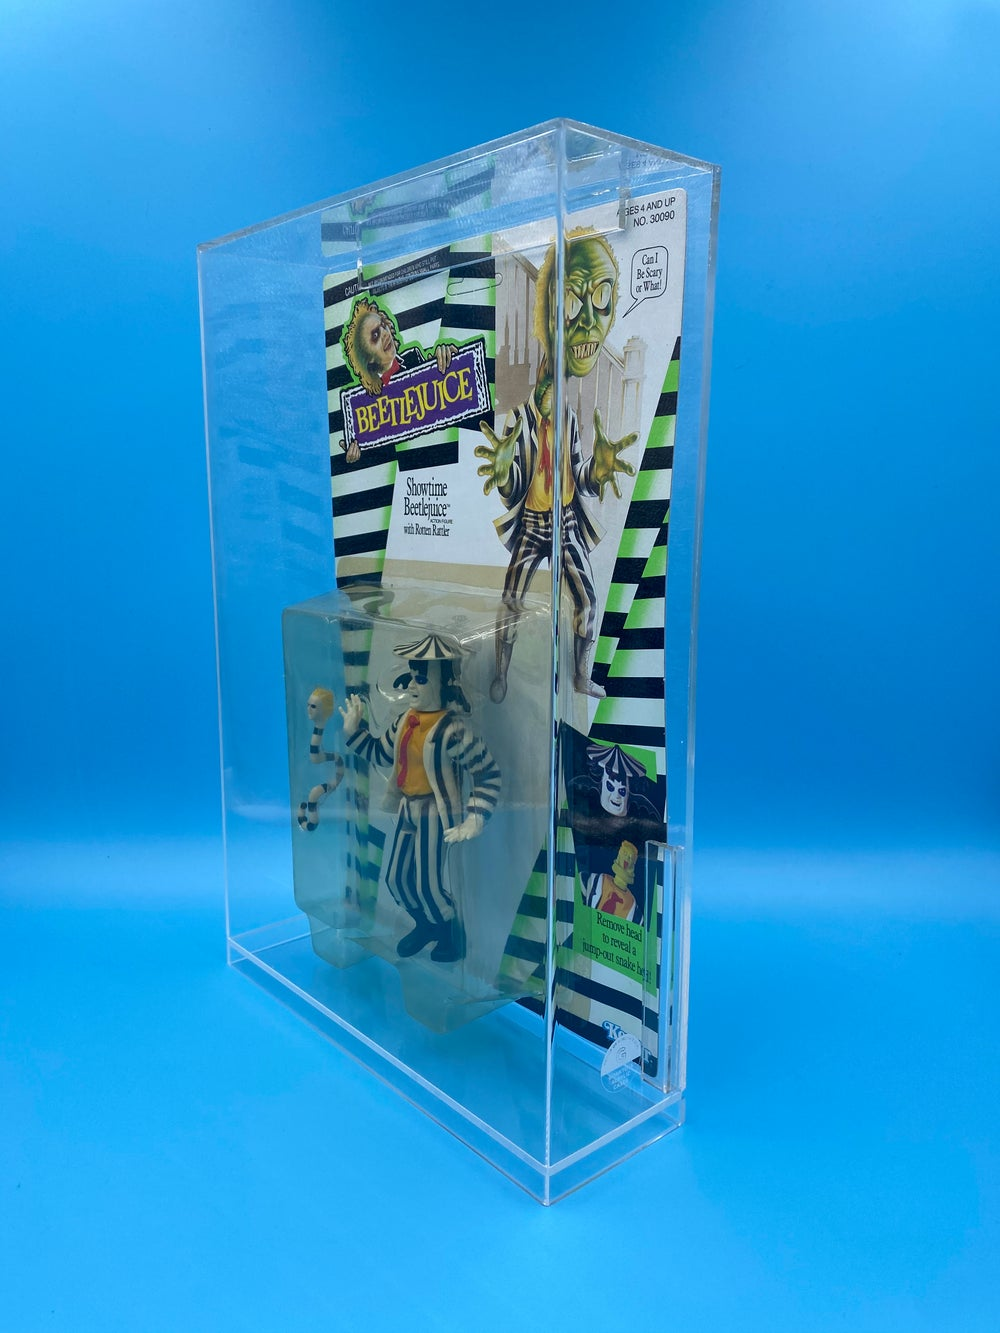 Beetlejuice Acrylic Display Case - Pre-order